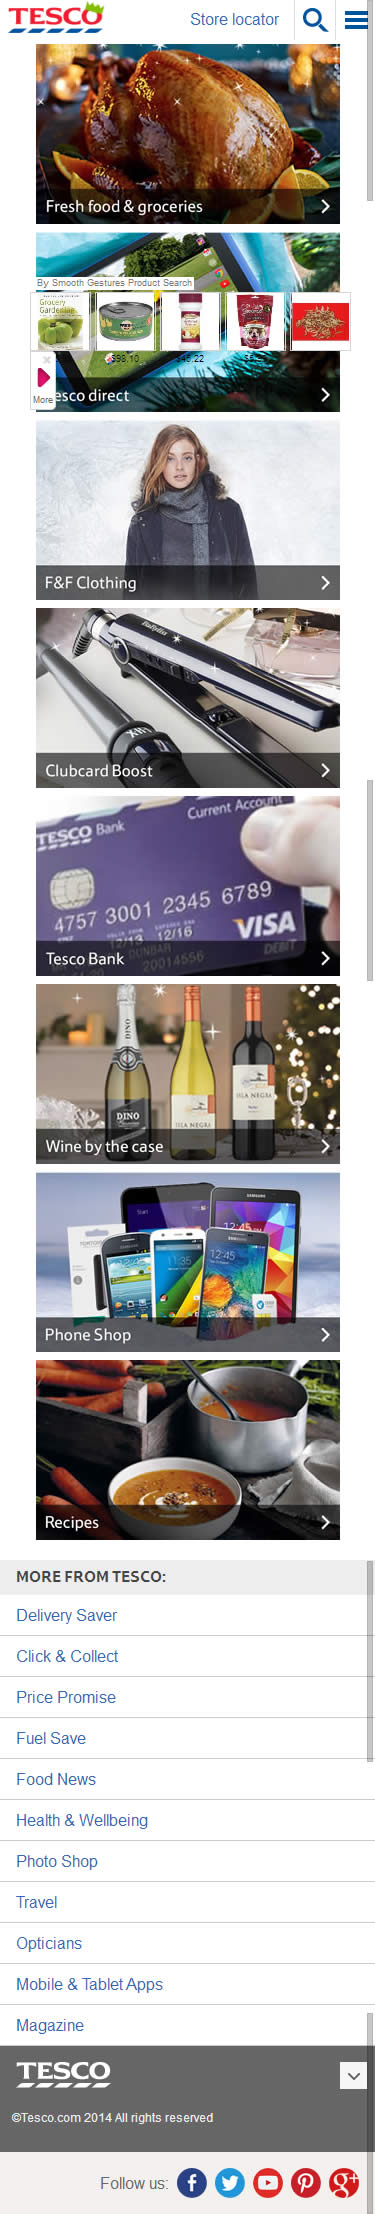 Tesco ecommerce mobile home page design example